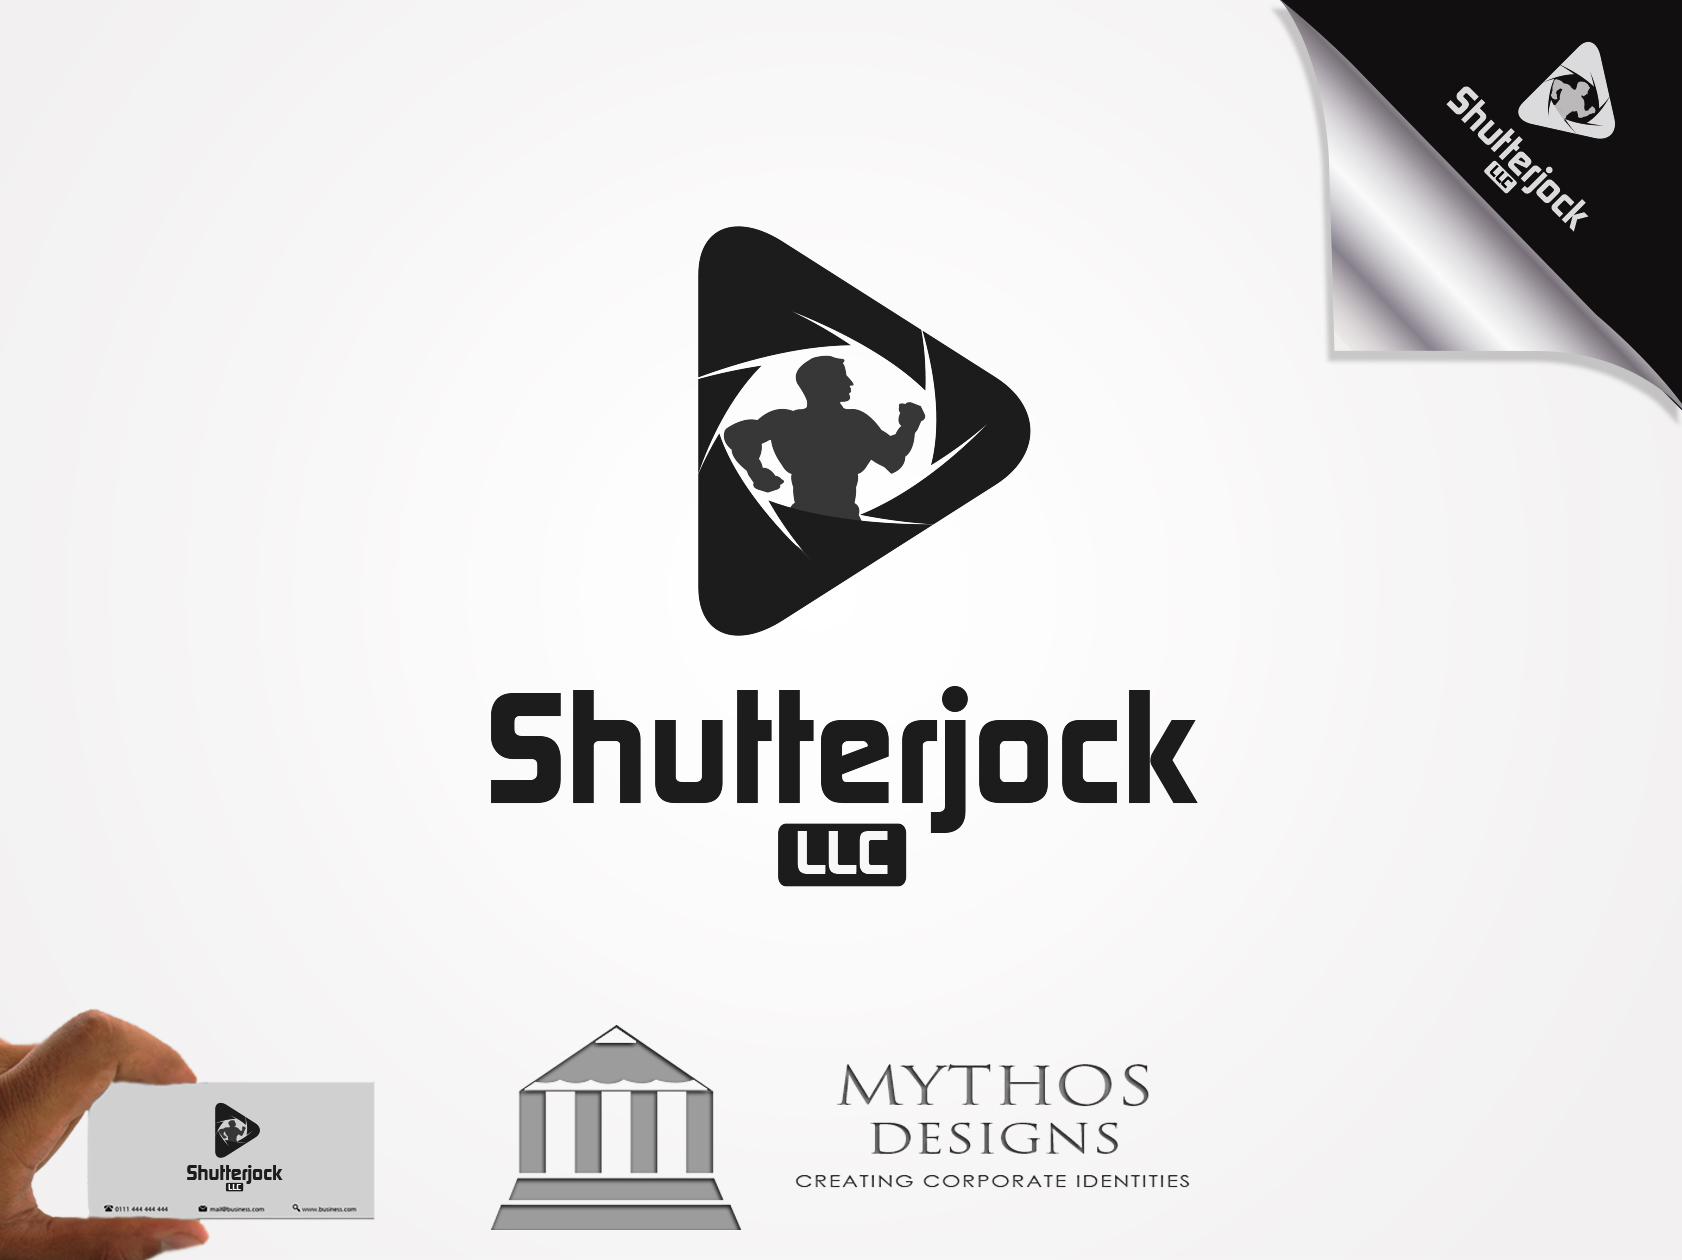 Logo Design by Mythos Designs - Entry No. 73 in the Logo Design Contest Unique Logo Design Wanted for Shutterjock LLC.